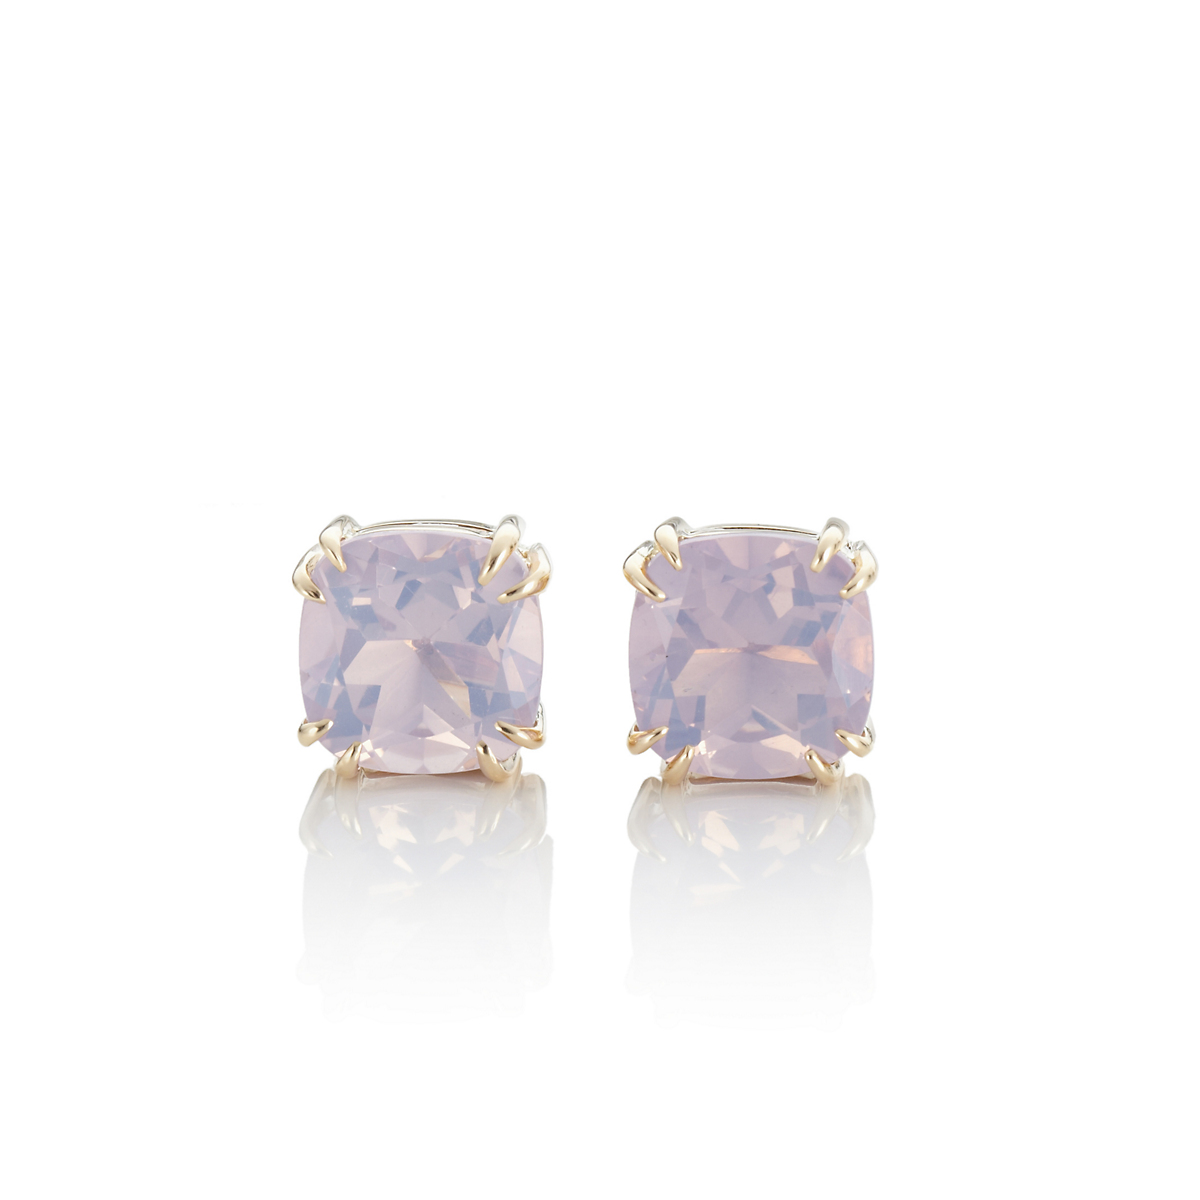 Gump's Lilac Quartz Earrings